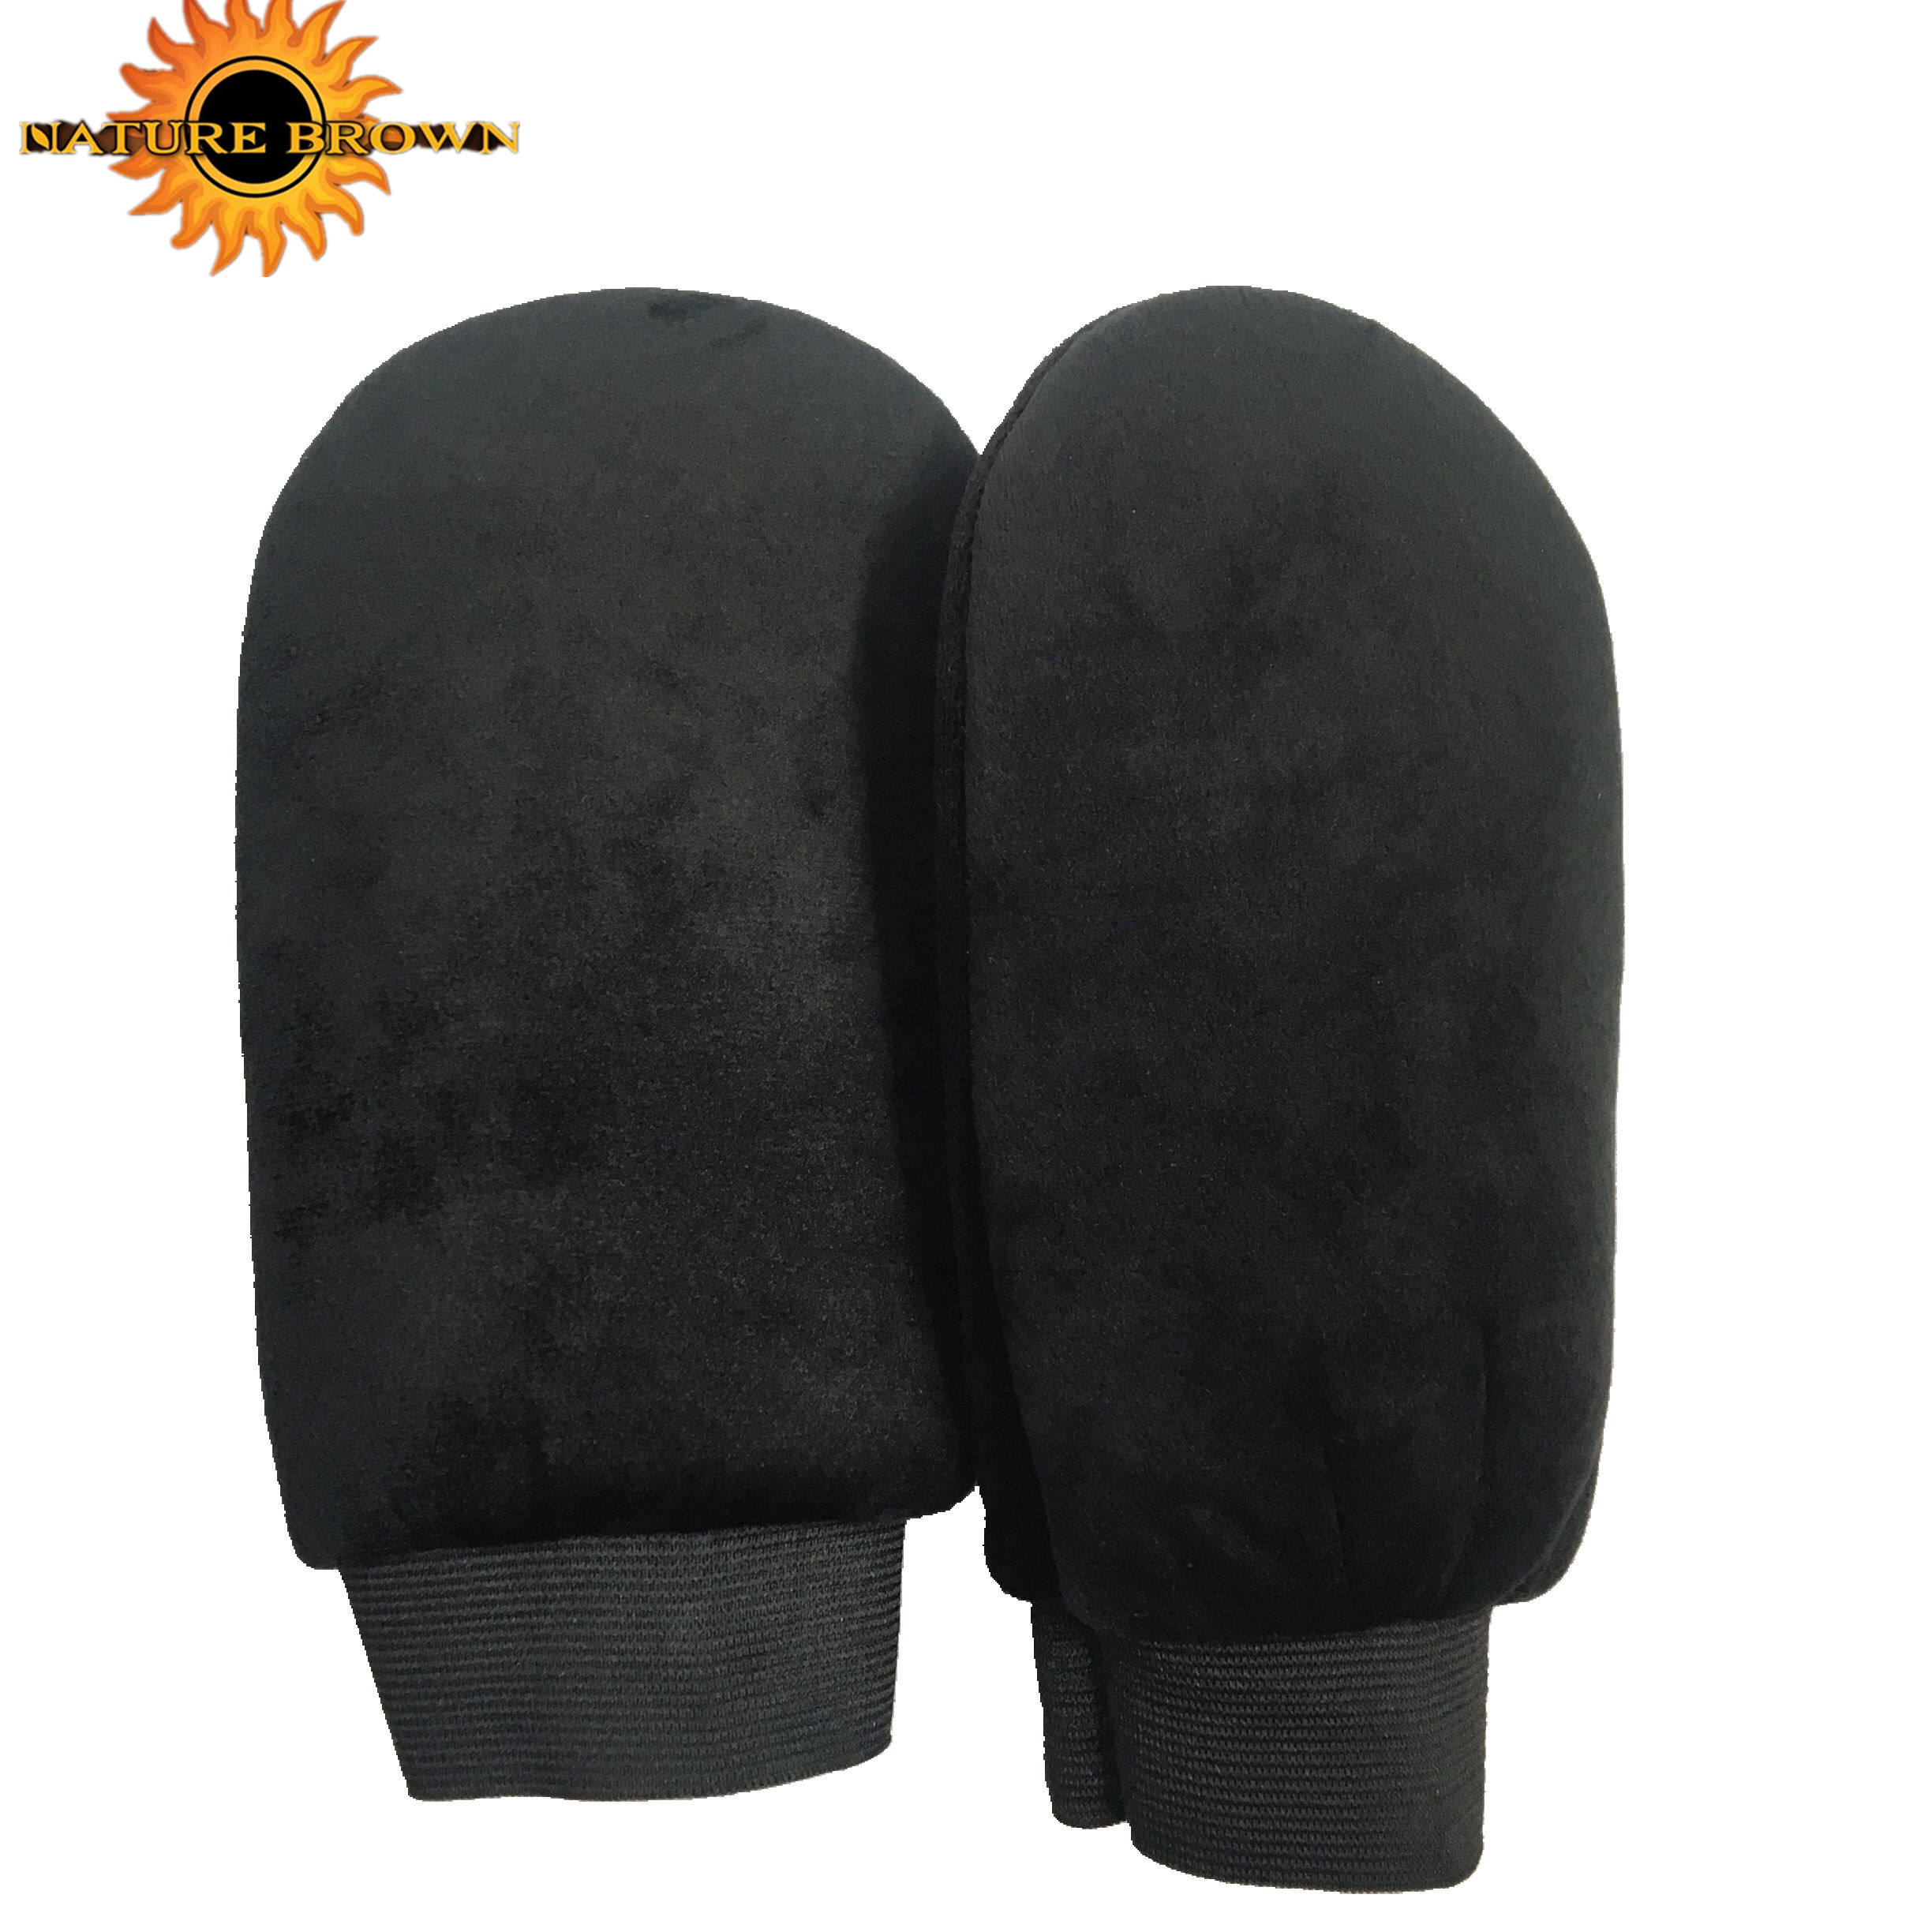 Manufacture 2018 new fashion comfortable tanning mitt